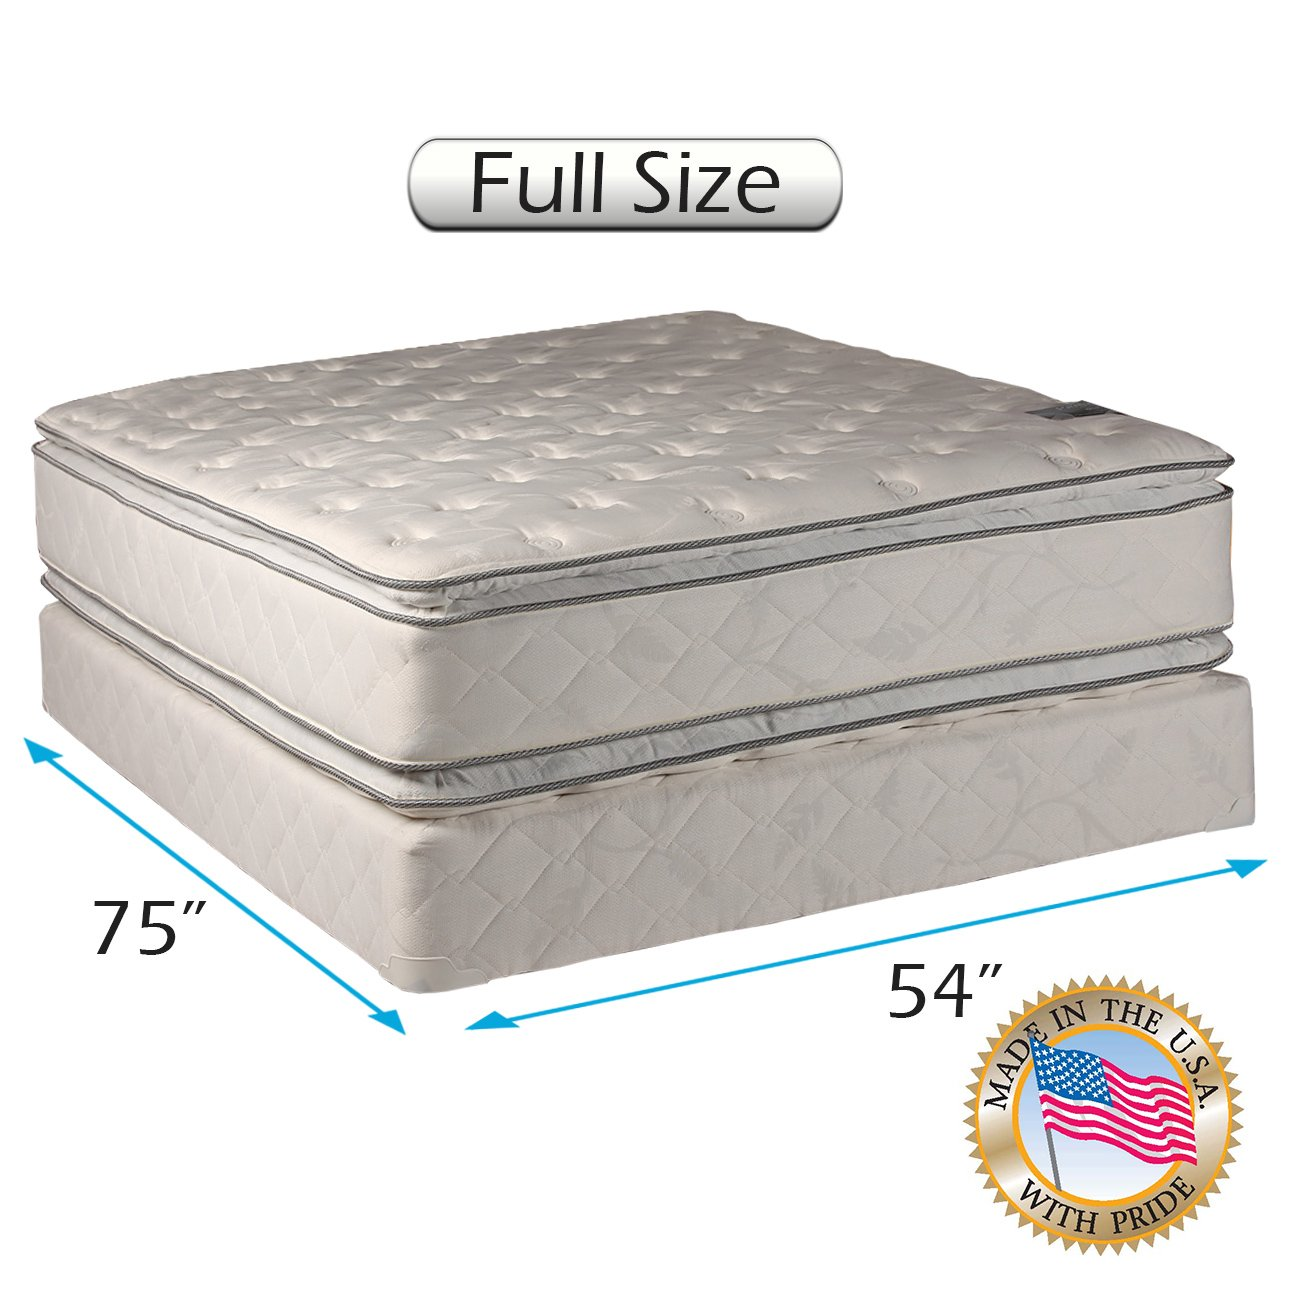 size furniture bed kids silva best cribs full mattress baby products sophia